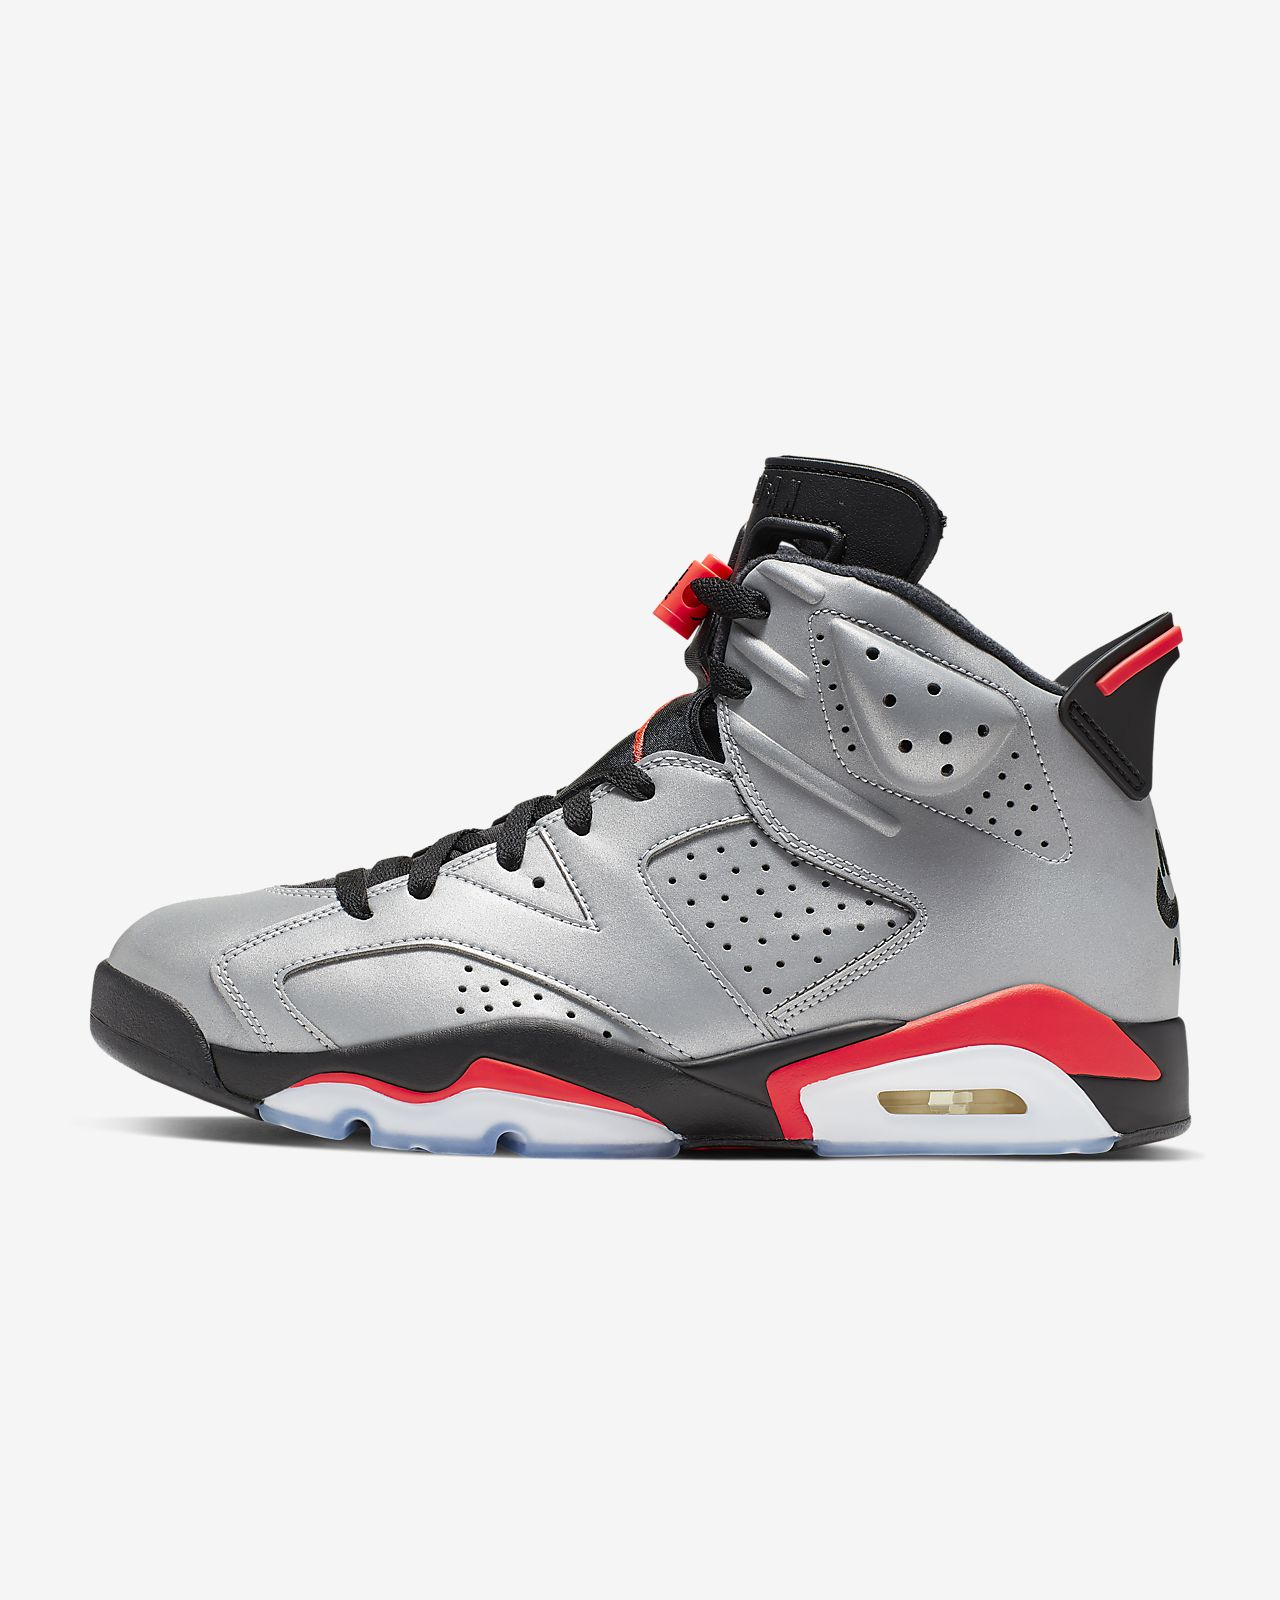 Air Jordan 6 Retro SP Men's Shoe